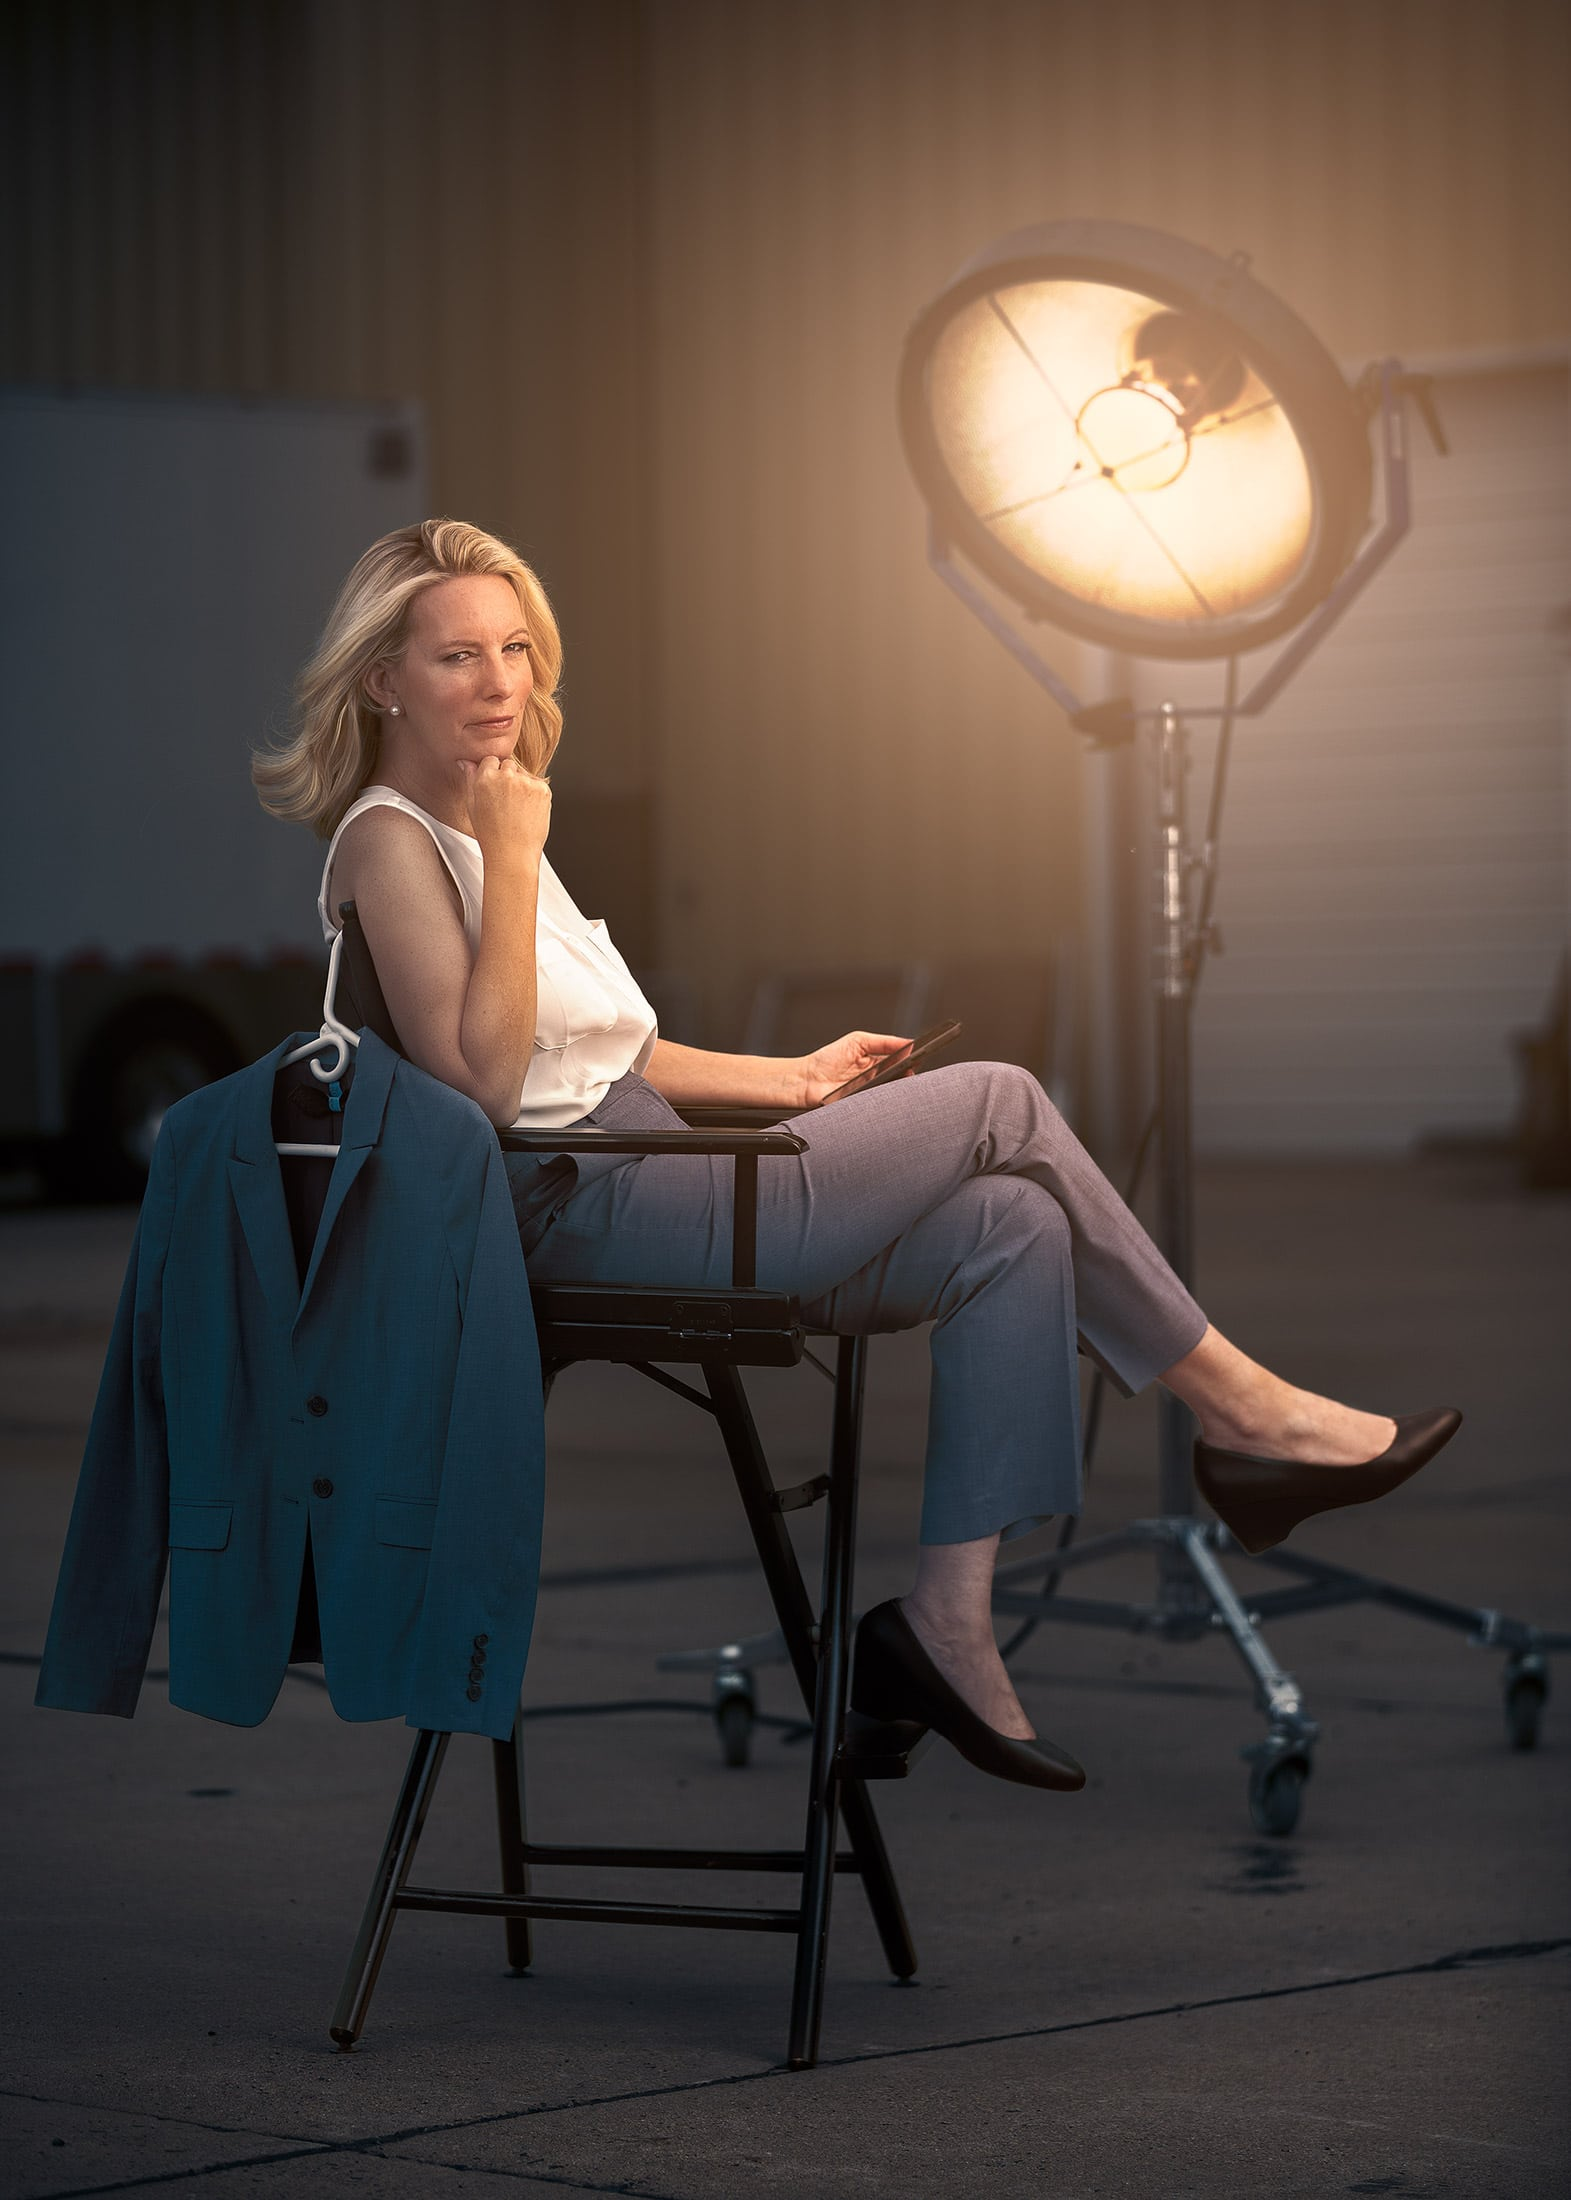 Portrait Photography Of Denver Lawyer In Hollywood Style